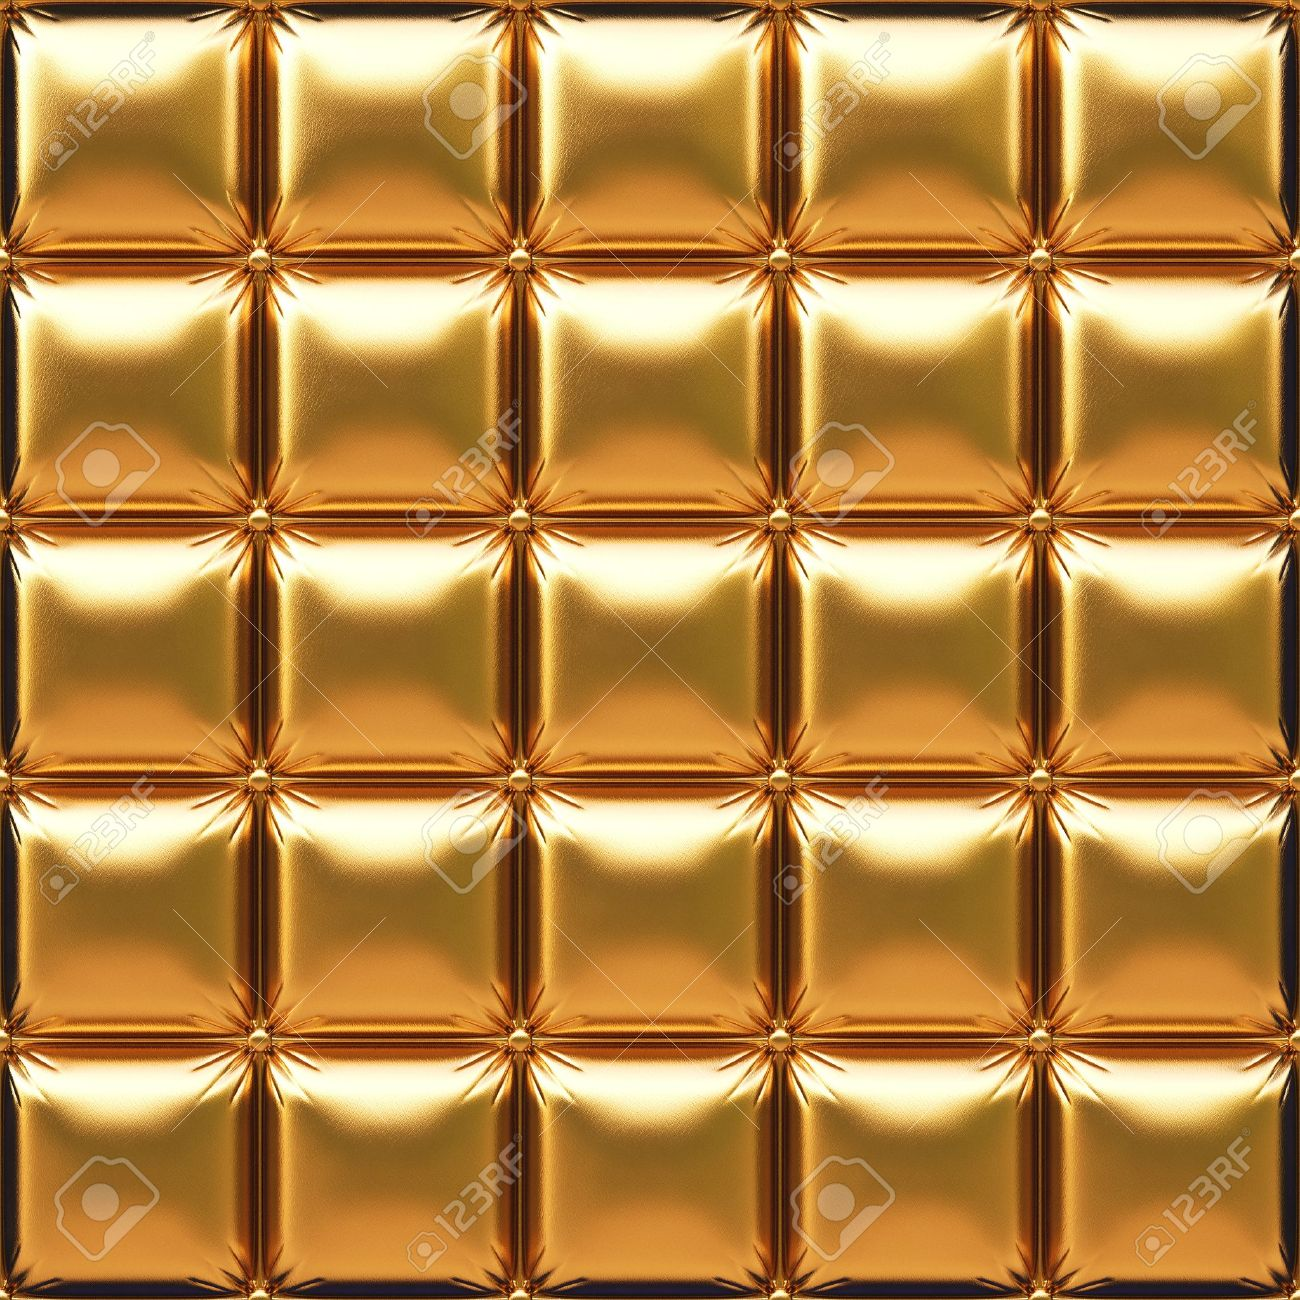 luxurious golden leather Stock Photo - 15847789